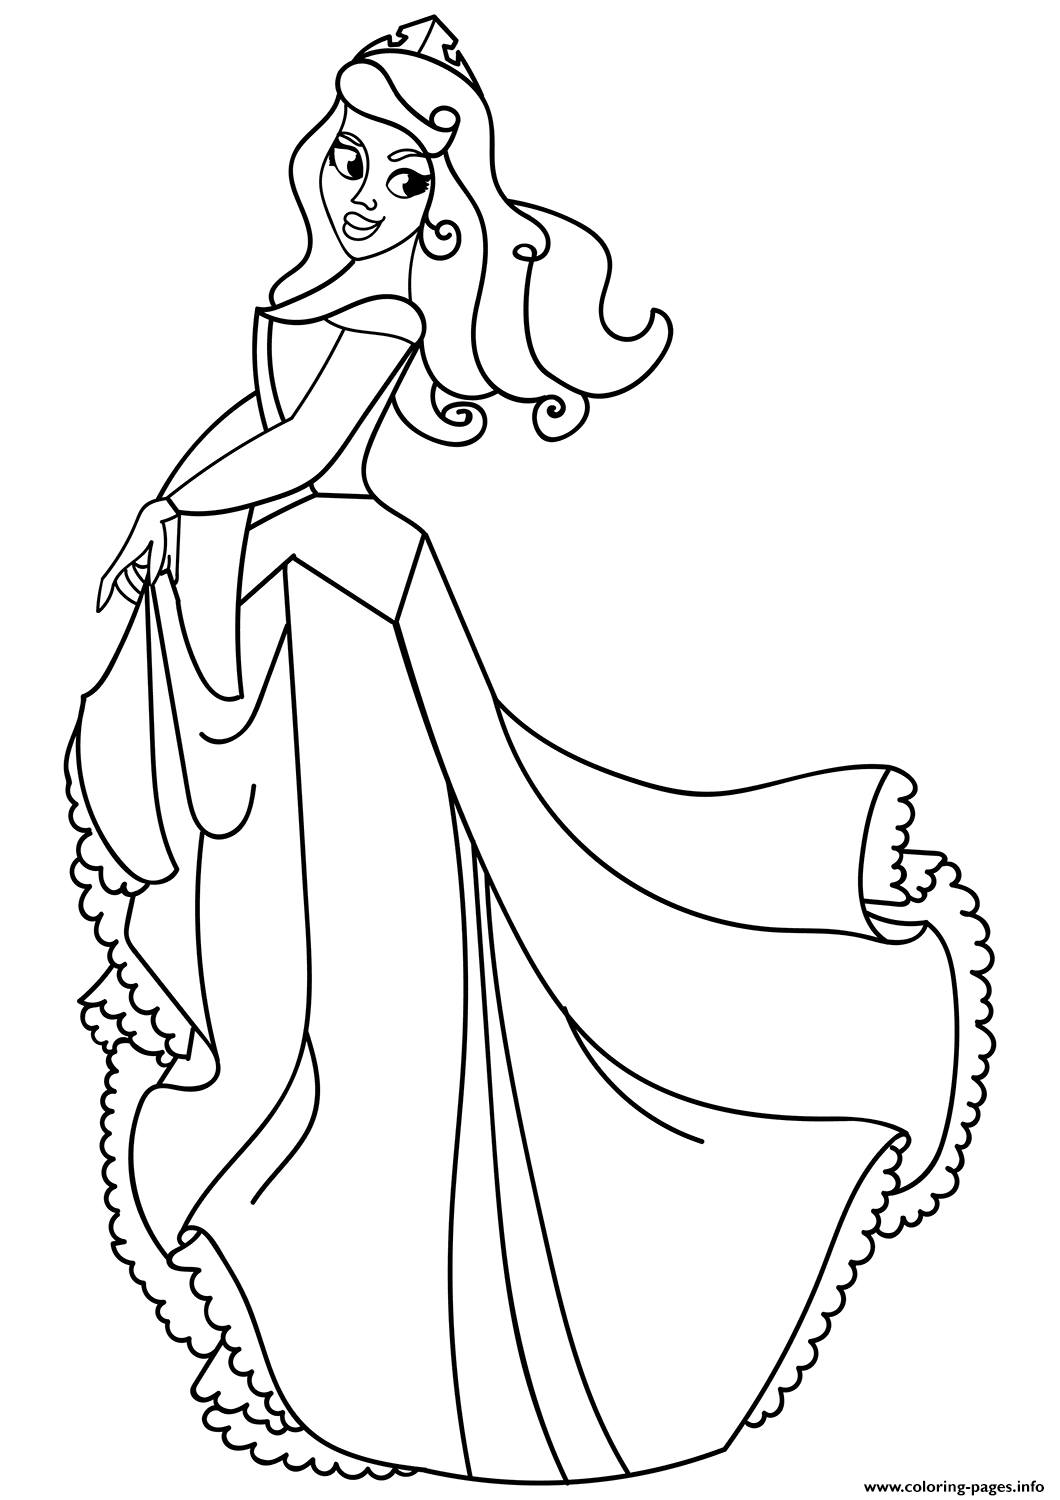 Princess Beautiful Dress Coloring Pages Printable